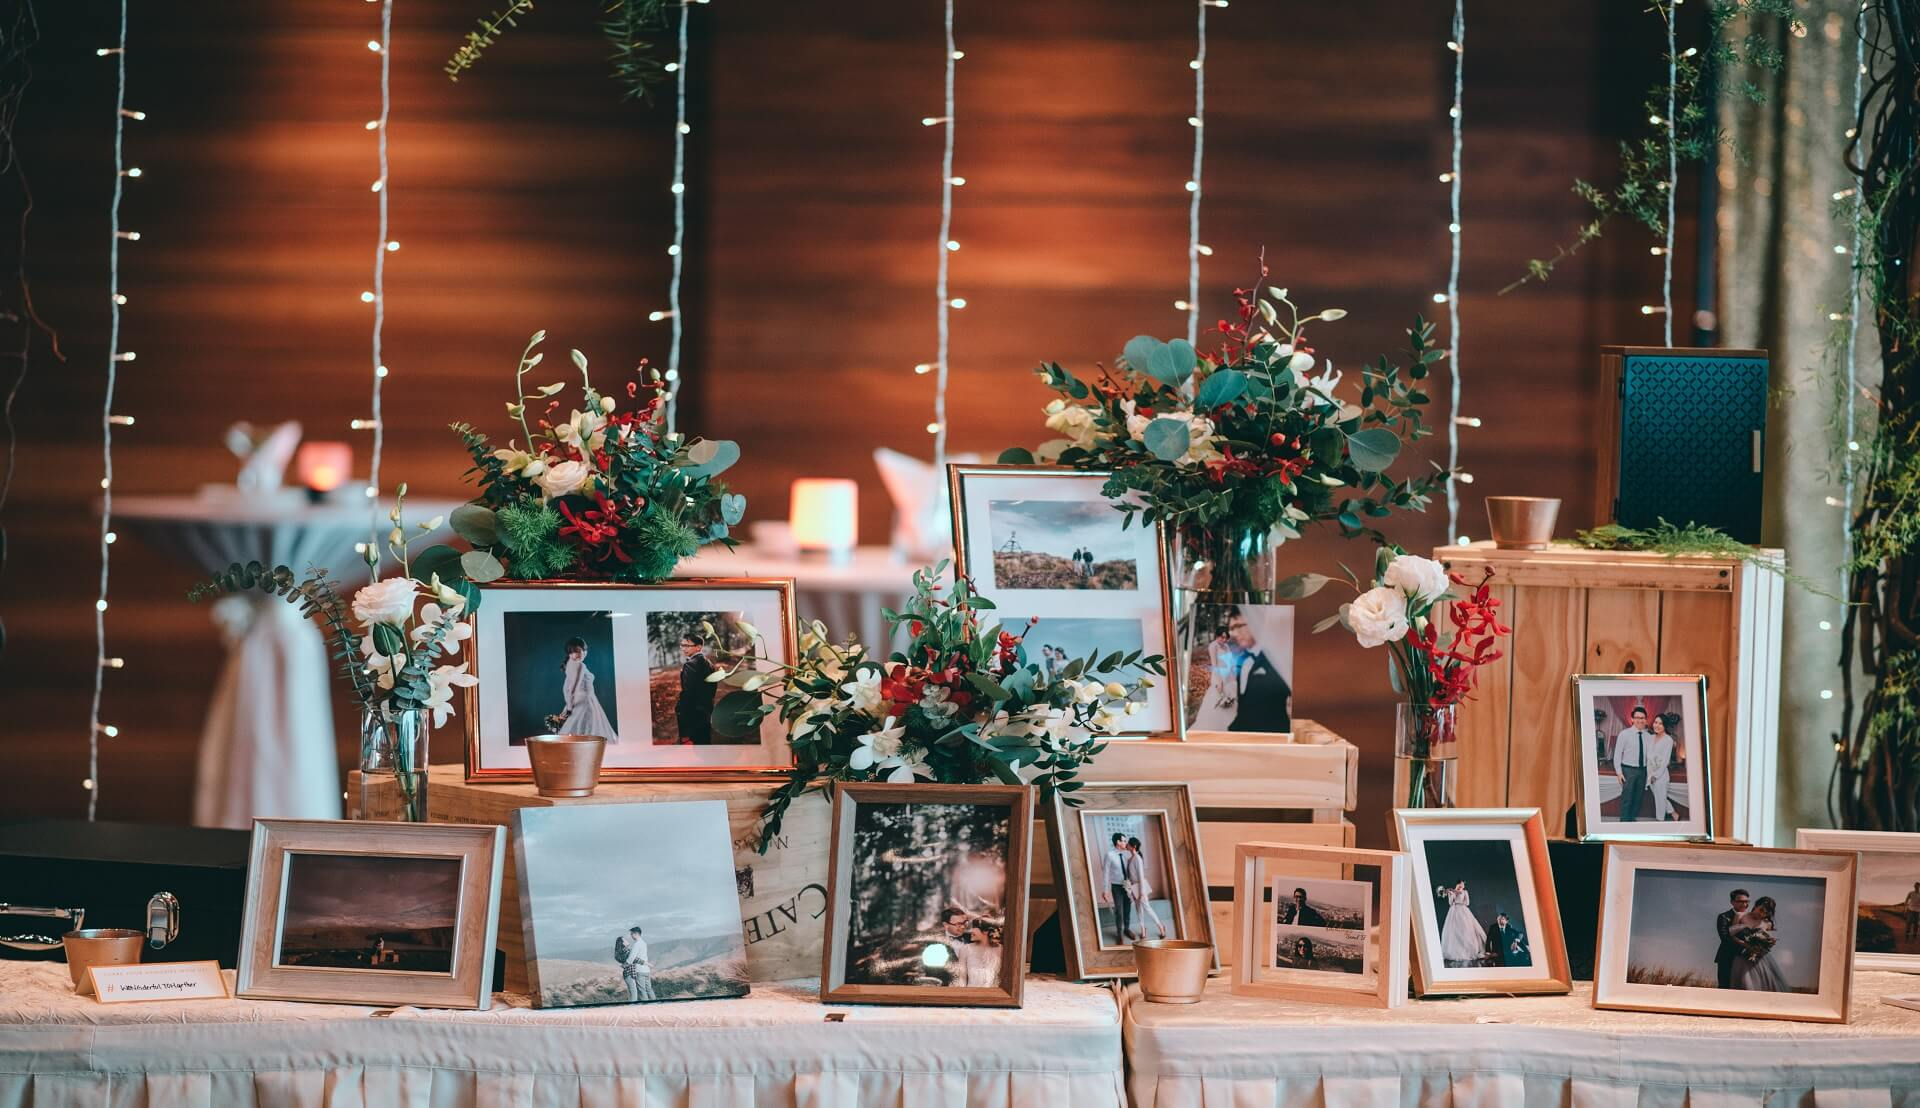 Sugar & Spice Events - Couple photograph display